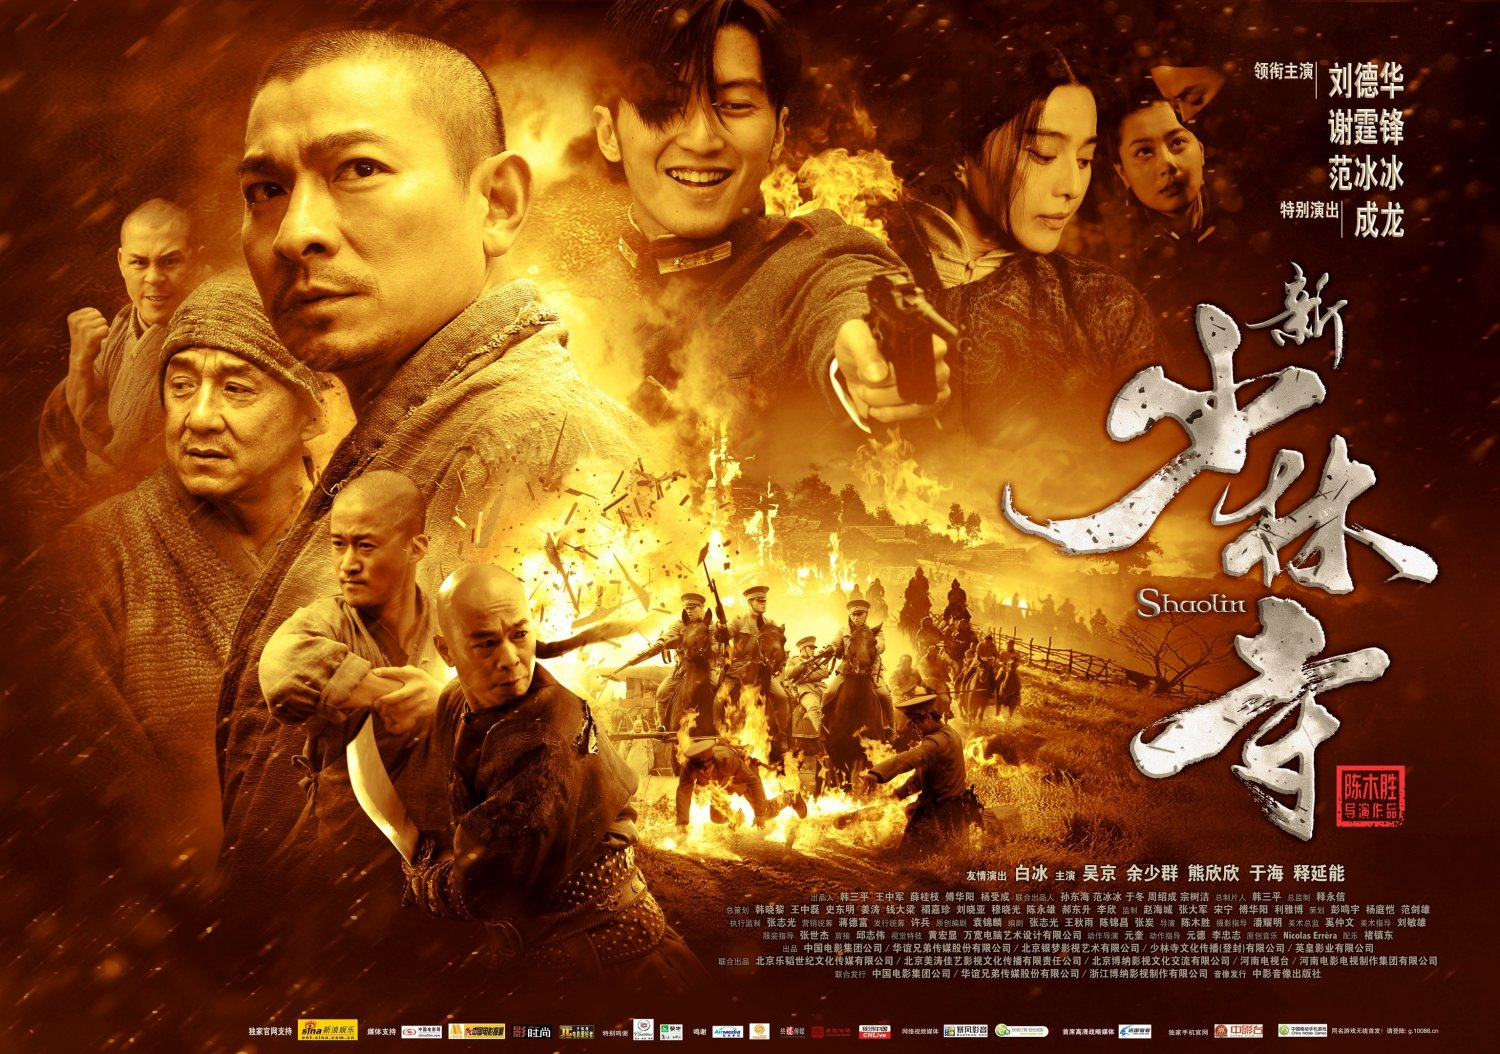 Film review: Shaolin (2011) | gbtimes com